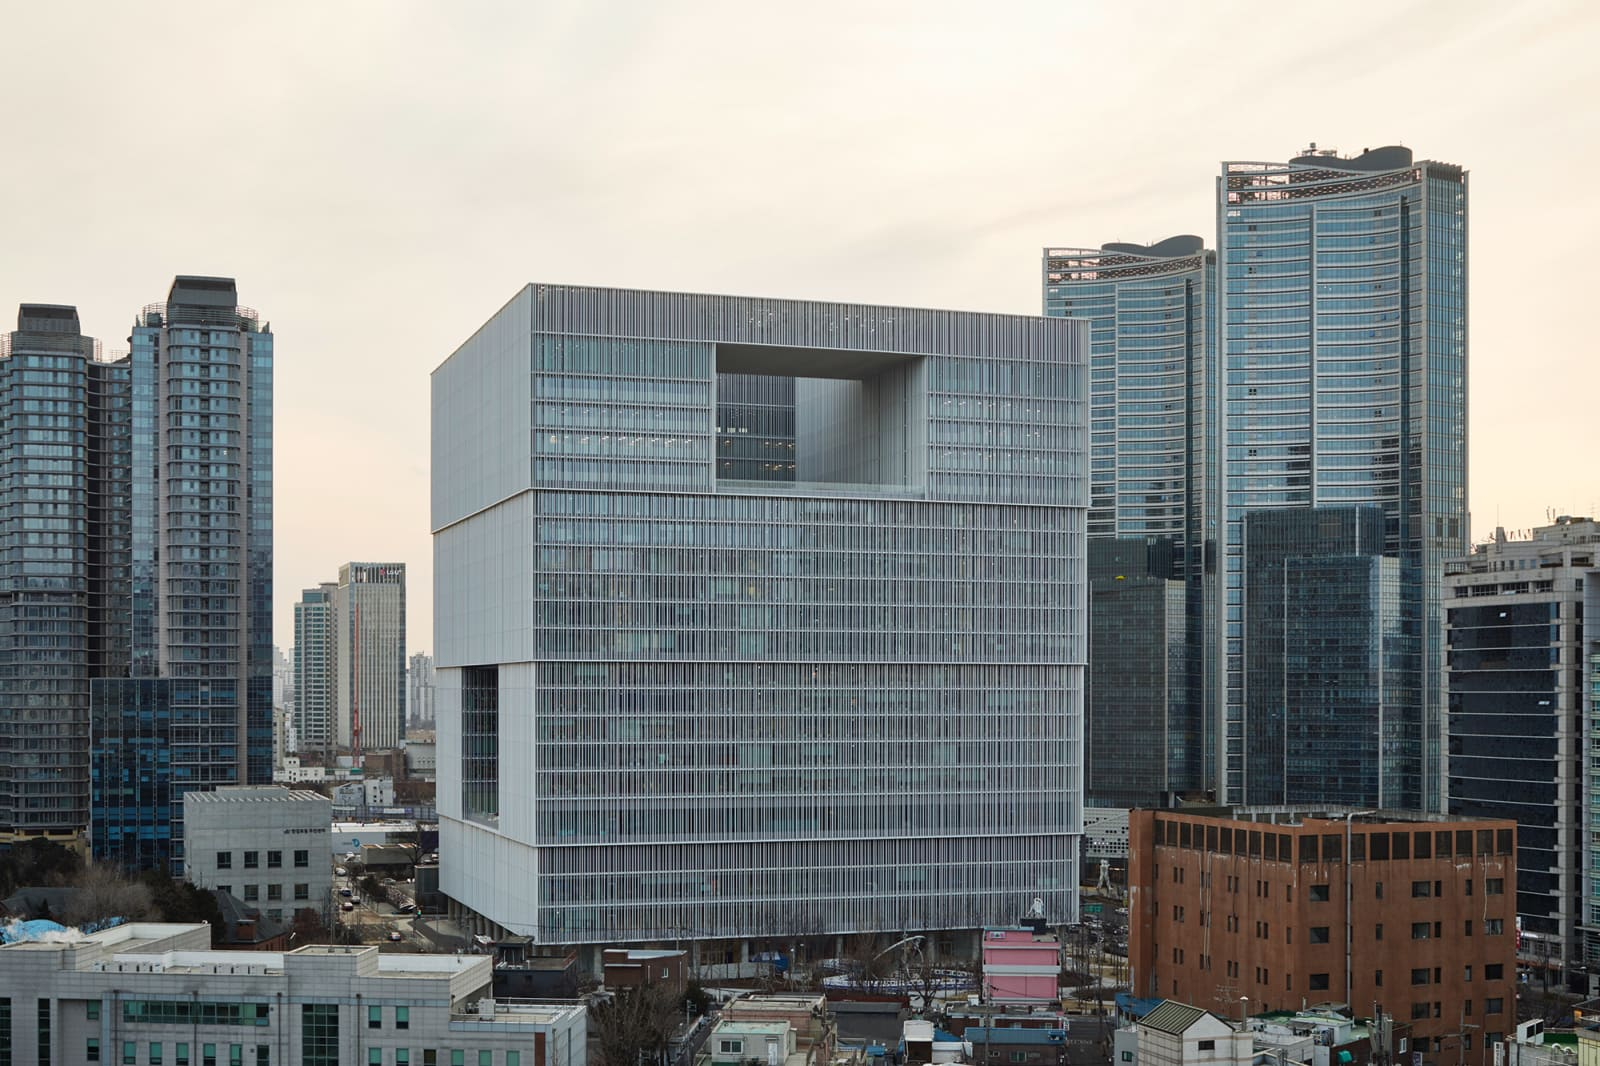 Amorepacific HQ von David Chipperfield Architects